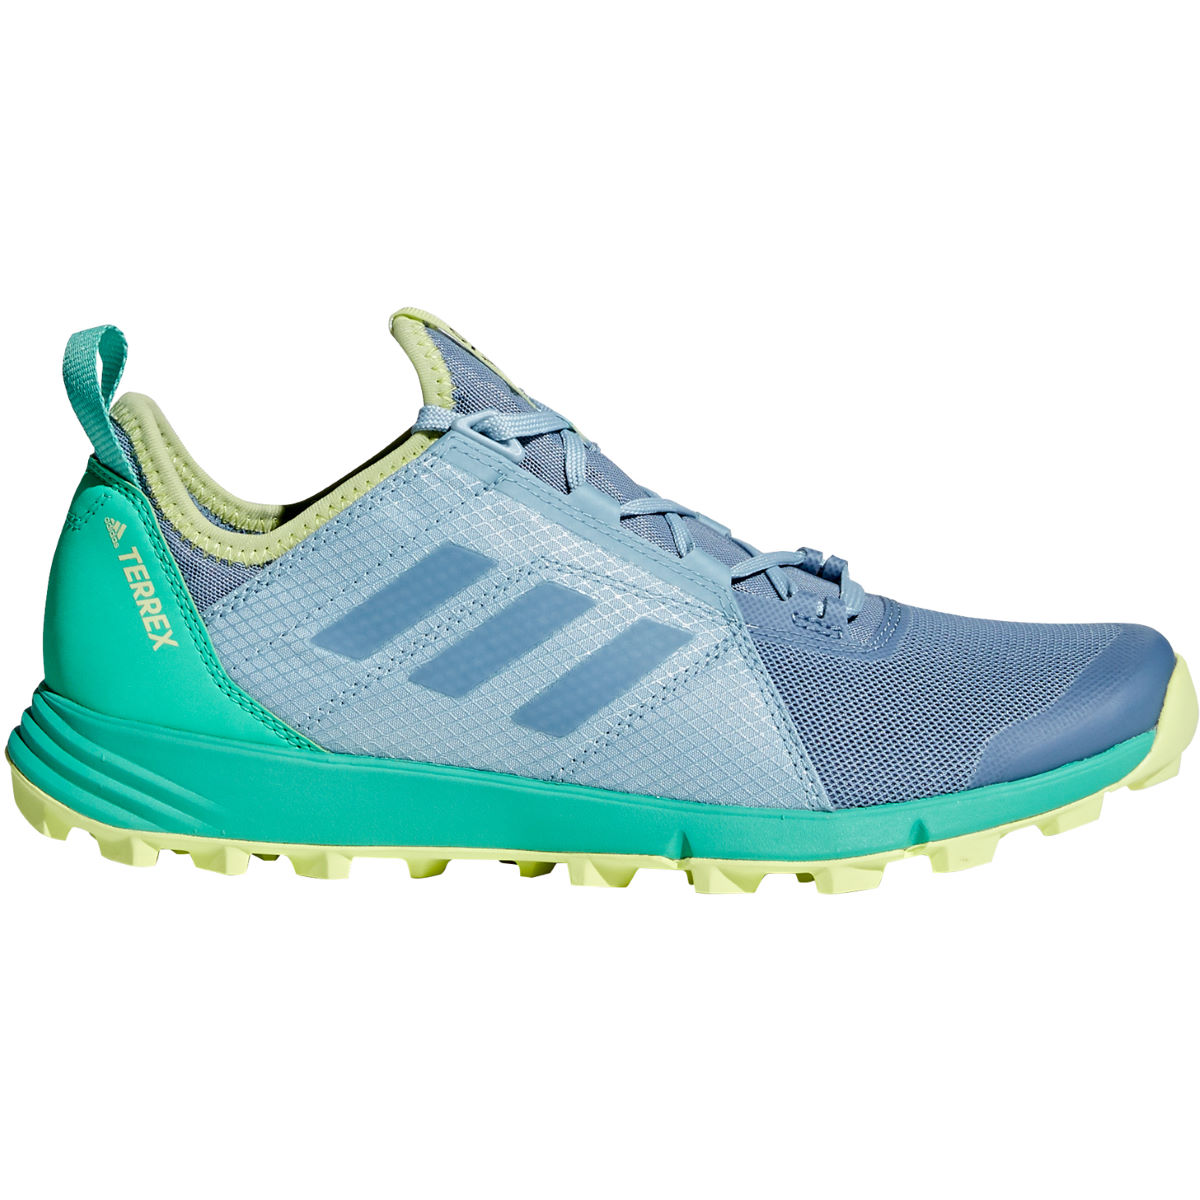 Adidas adidas Women's Terrex Agravic Speed   Trail Shoes